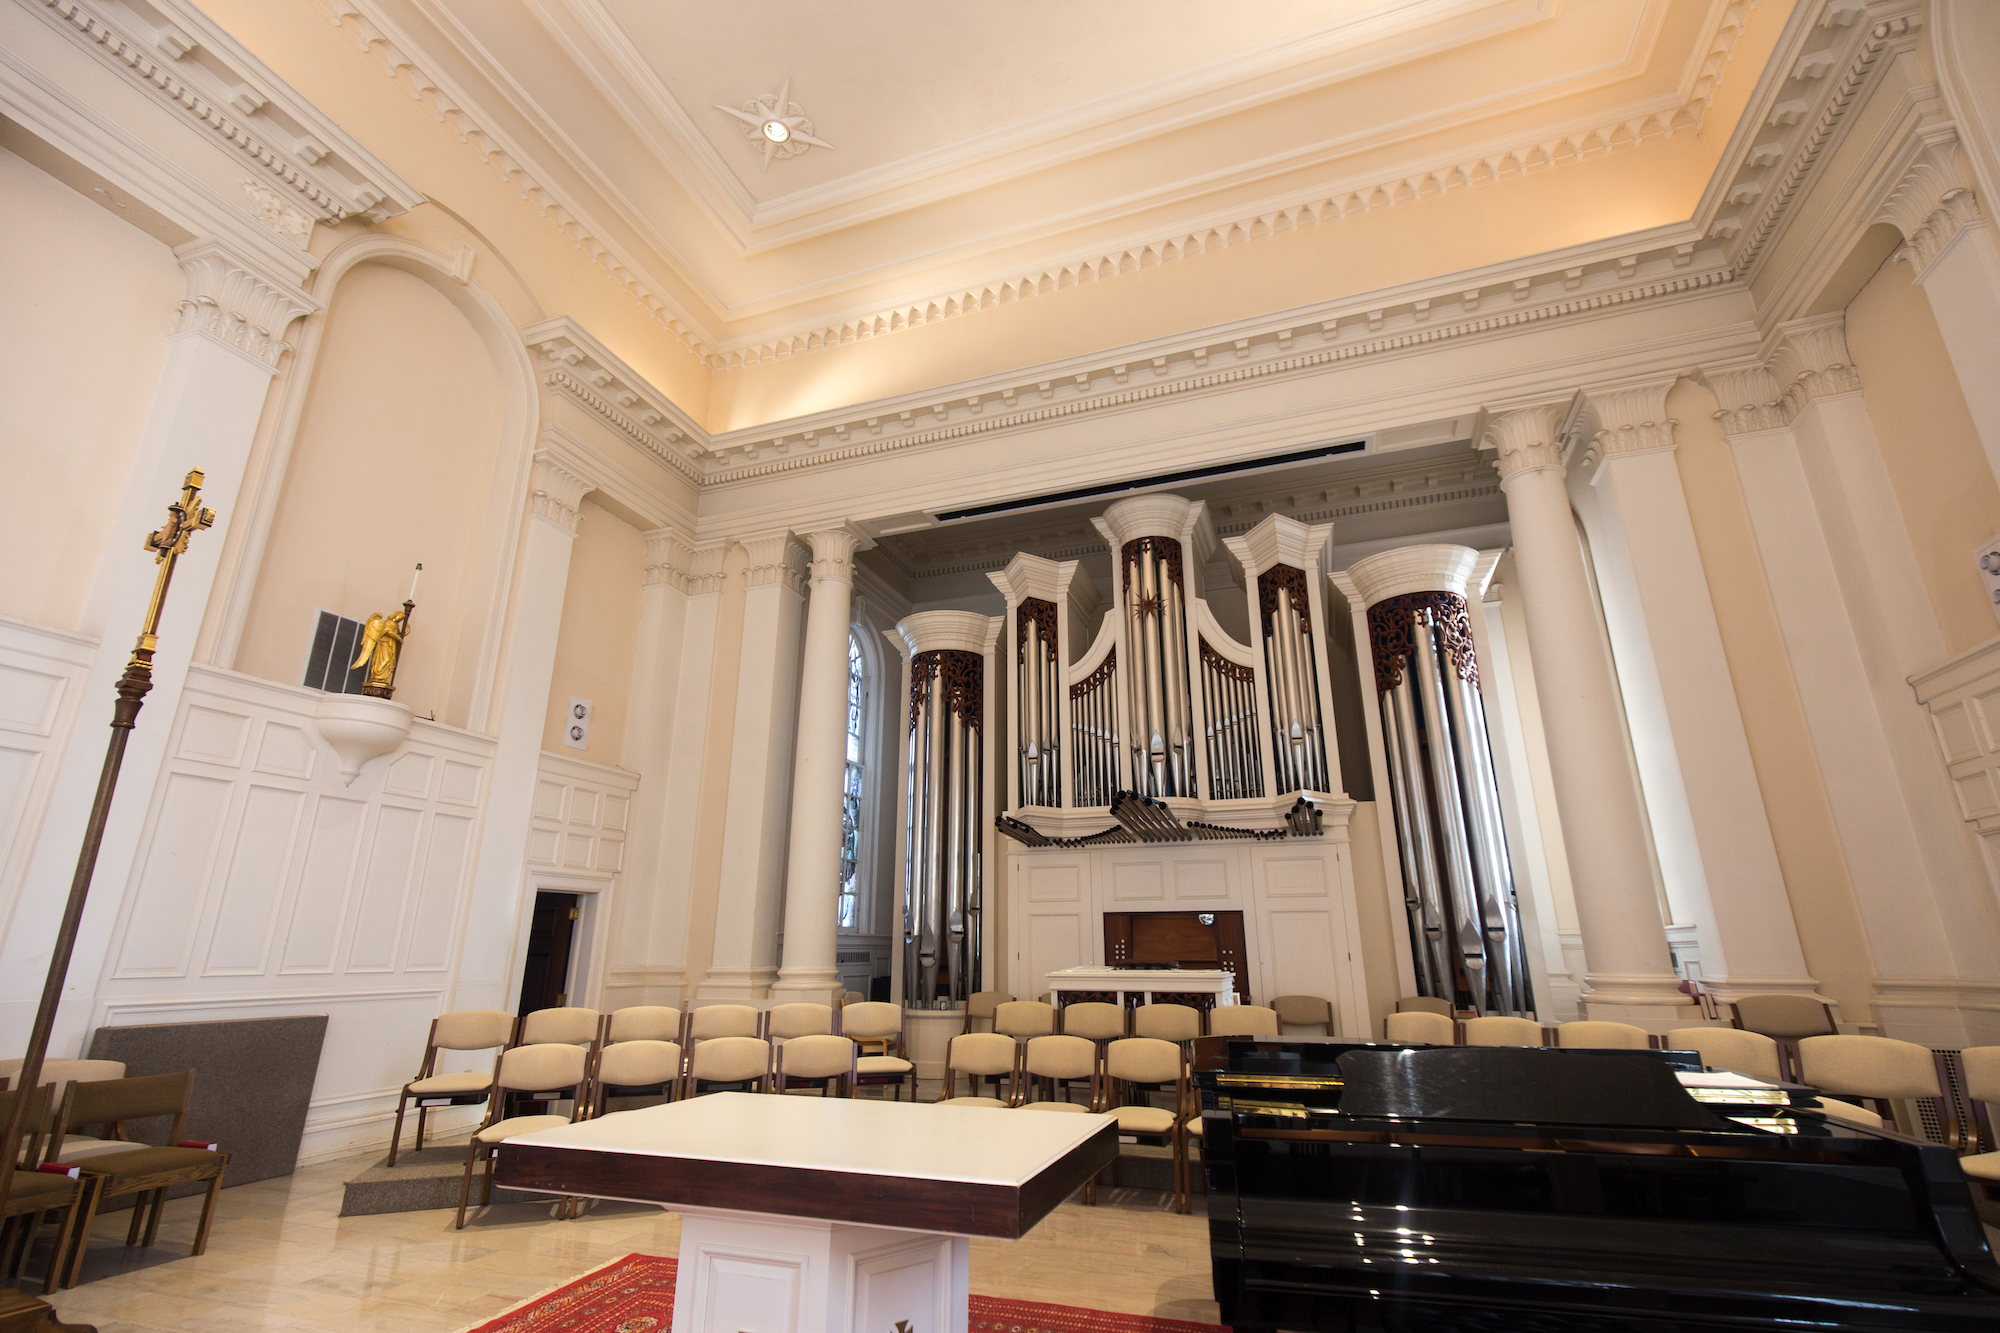 The Organ of the Church of the Abiding Presence